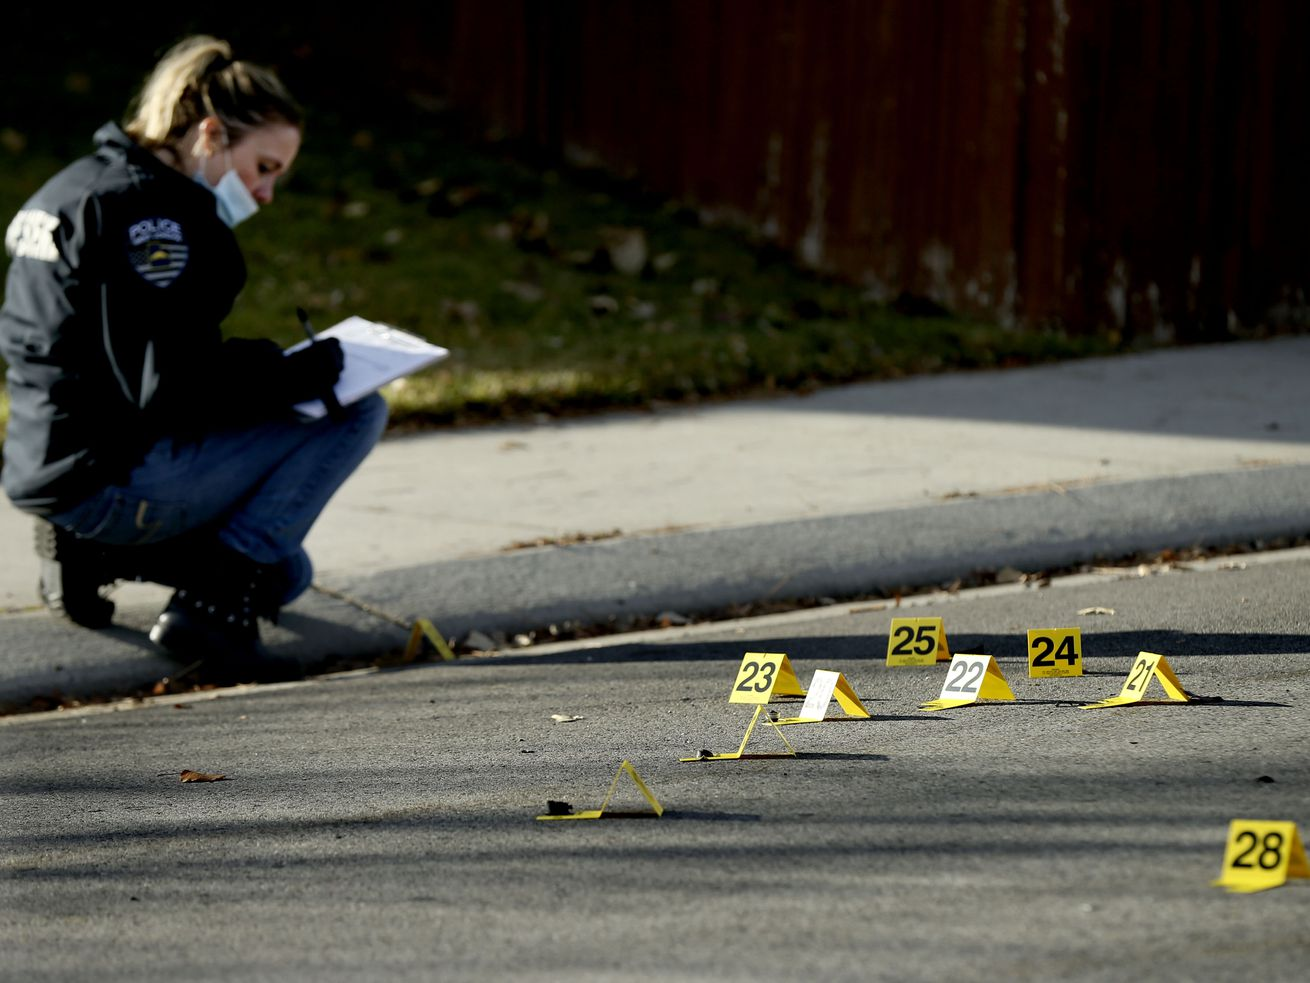 A West Jordan police officer investigates the scene of a shooting that left one man dead in West Jordan on Thursday, Nov. 19, 2020. Officers responded to the area of 7000 South and 5200 West about 2:30 a.m. and found a man deceased in the street.